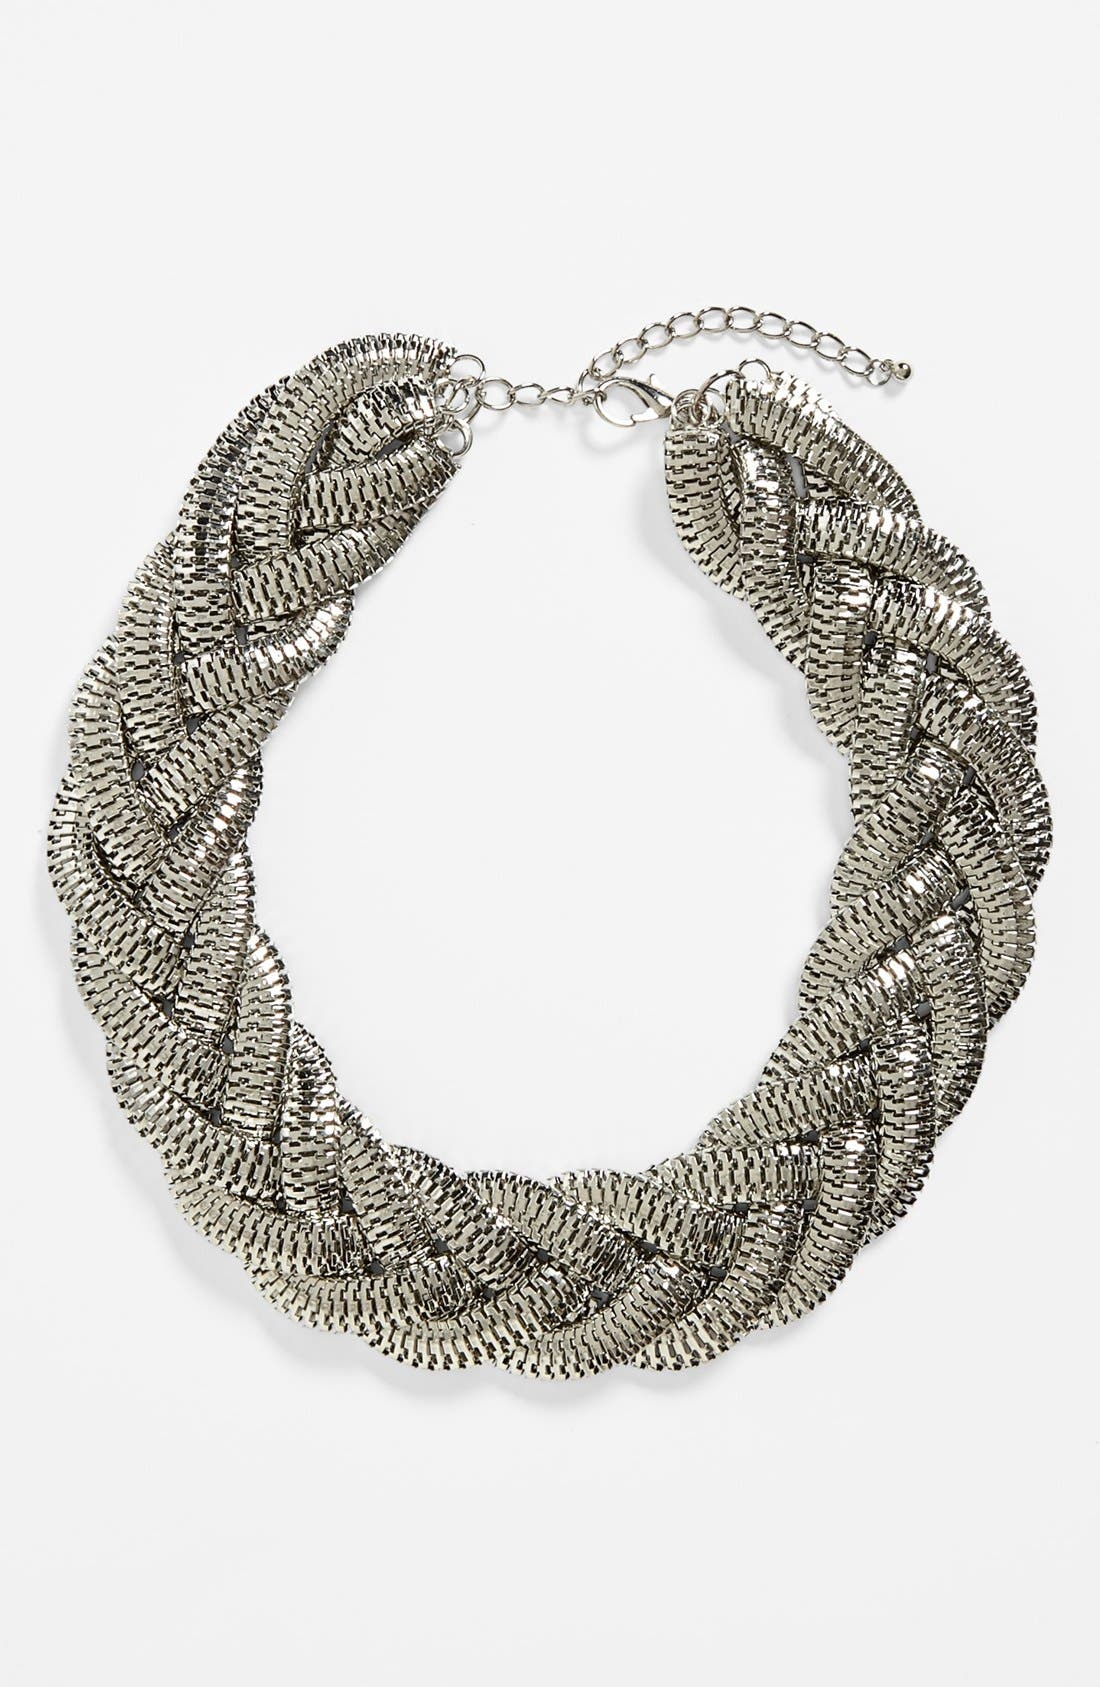 Main Image - Kool Konnections Braided Chain Collar Necklace (Juniors) (Online Only)